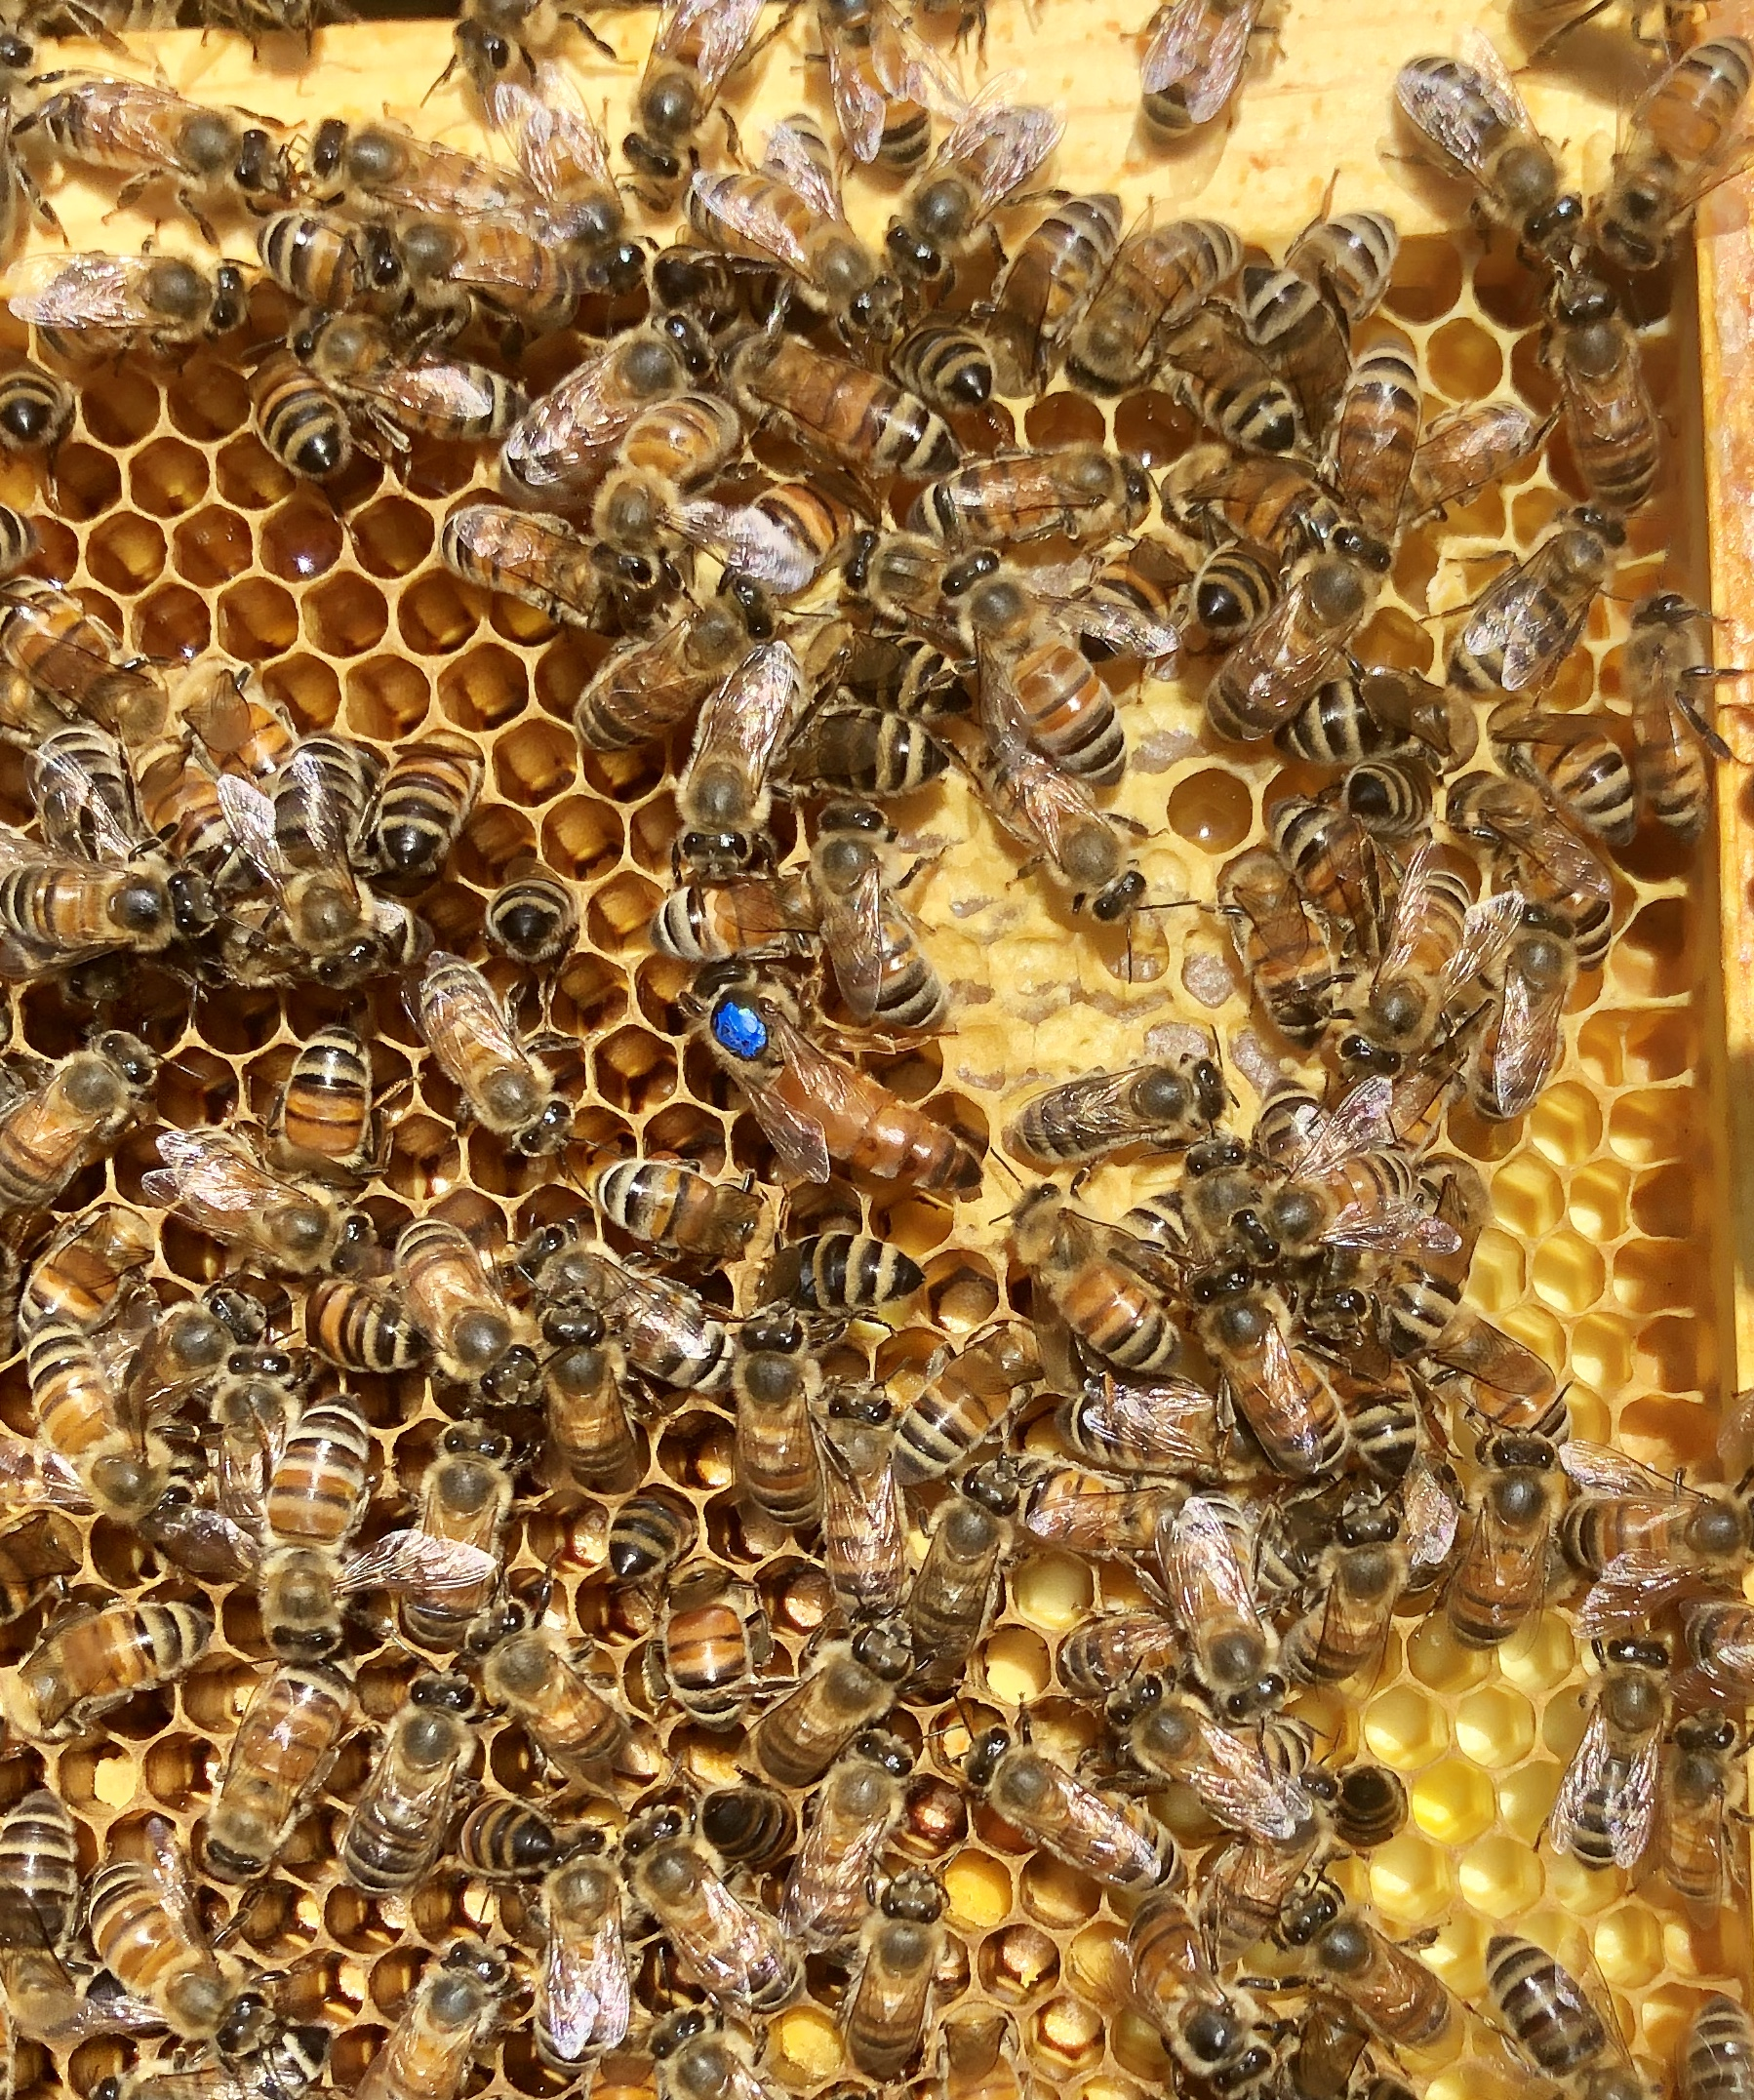 Queen and Worker Bees on Frame